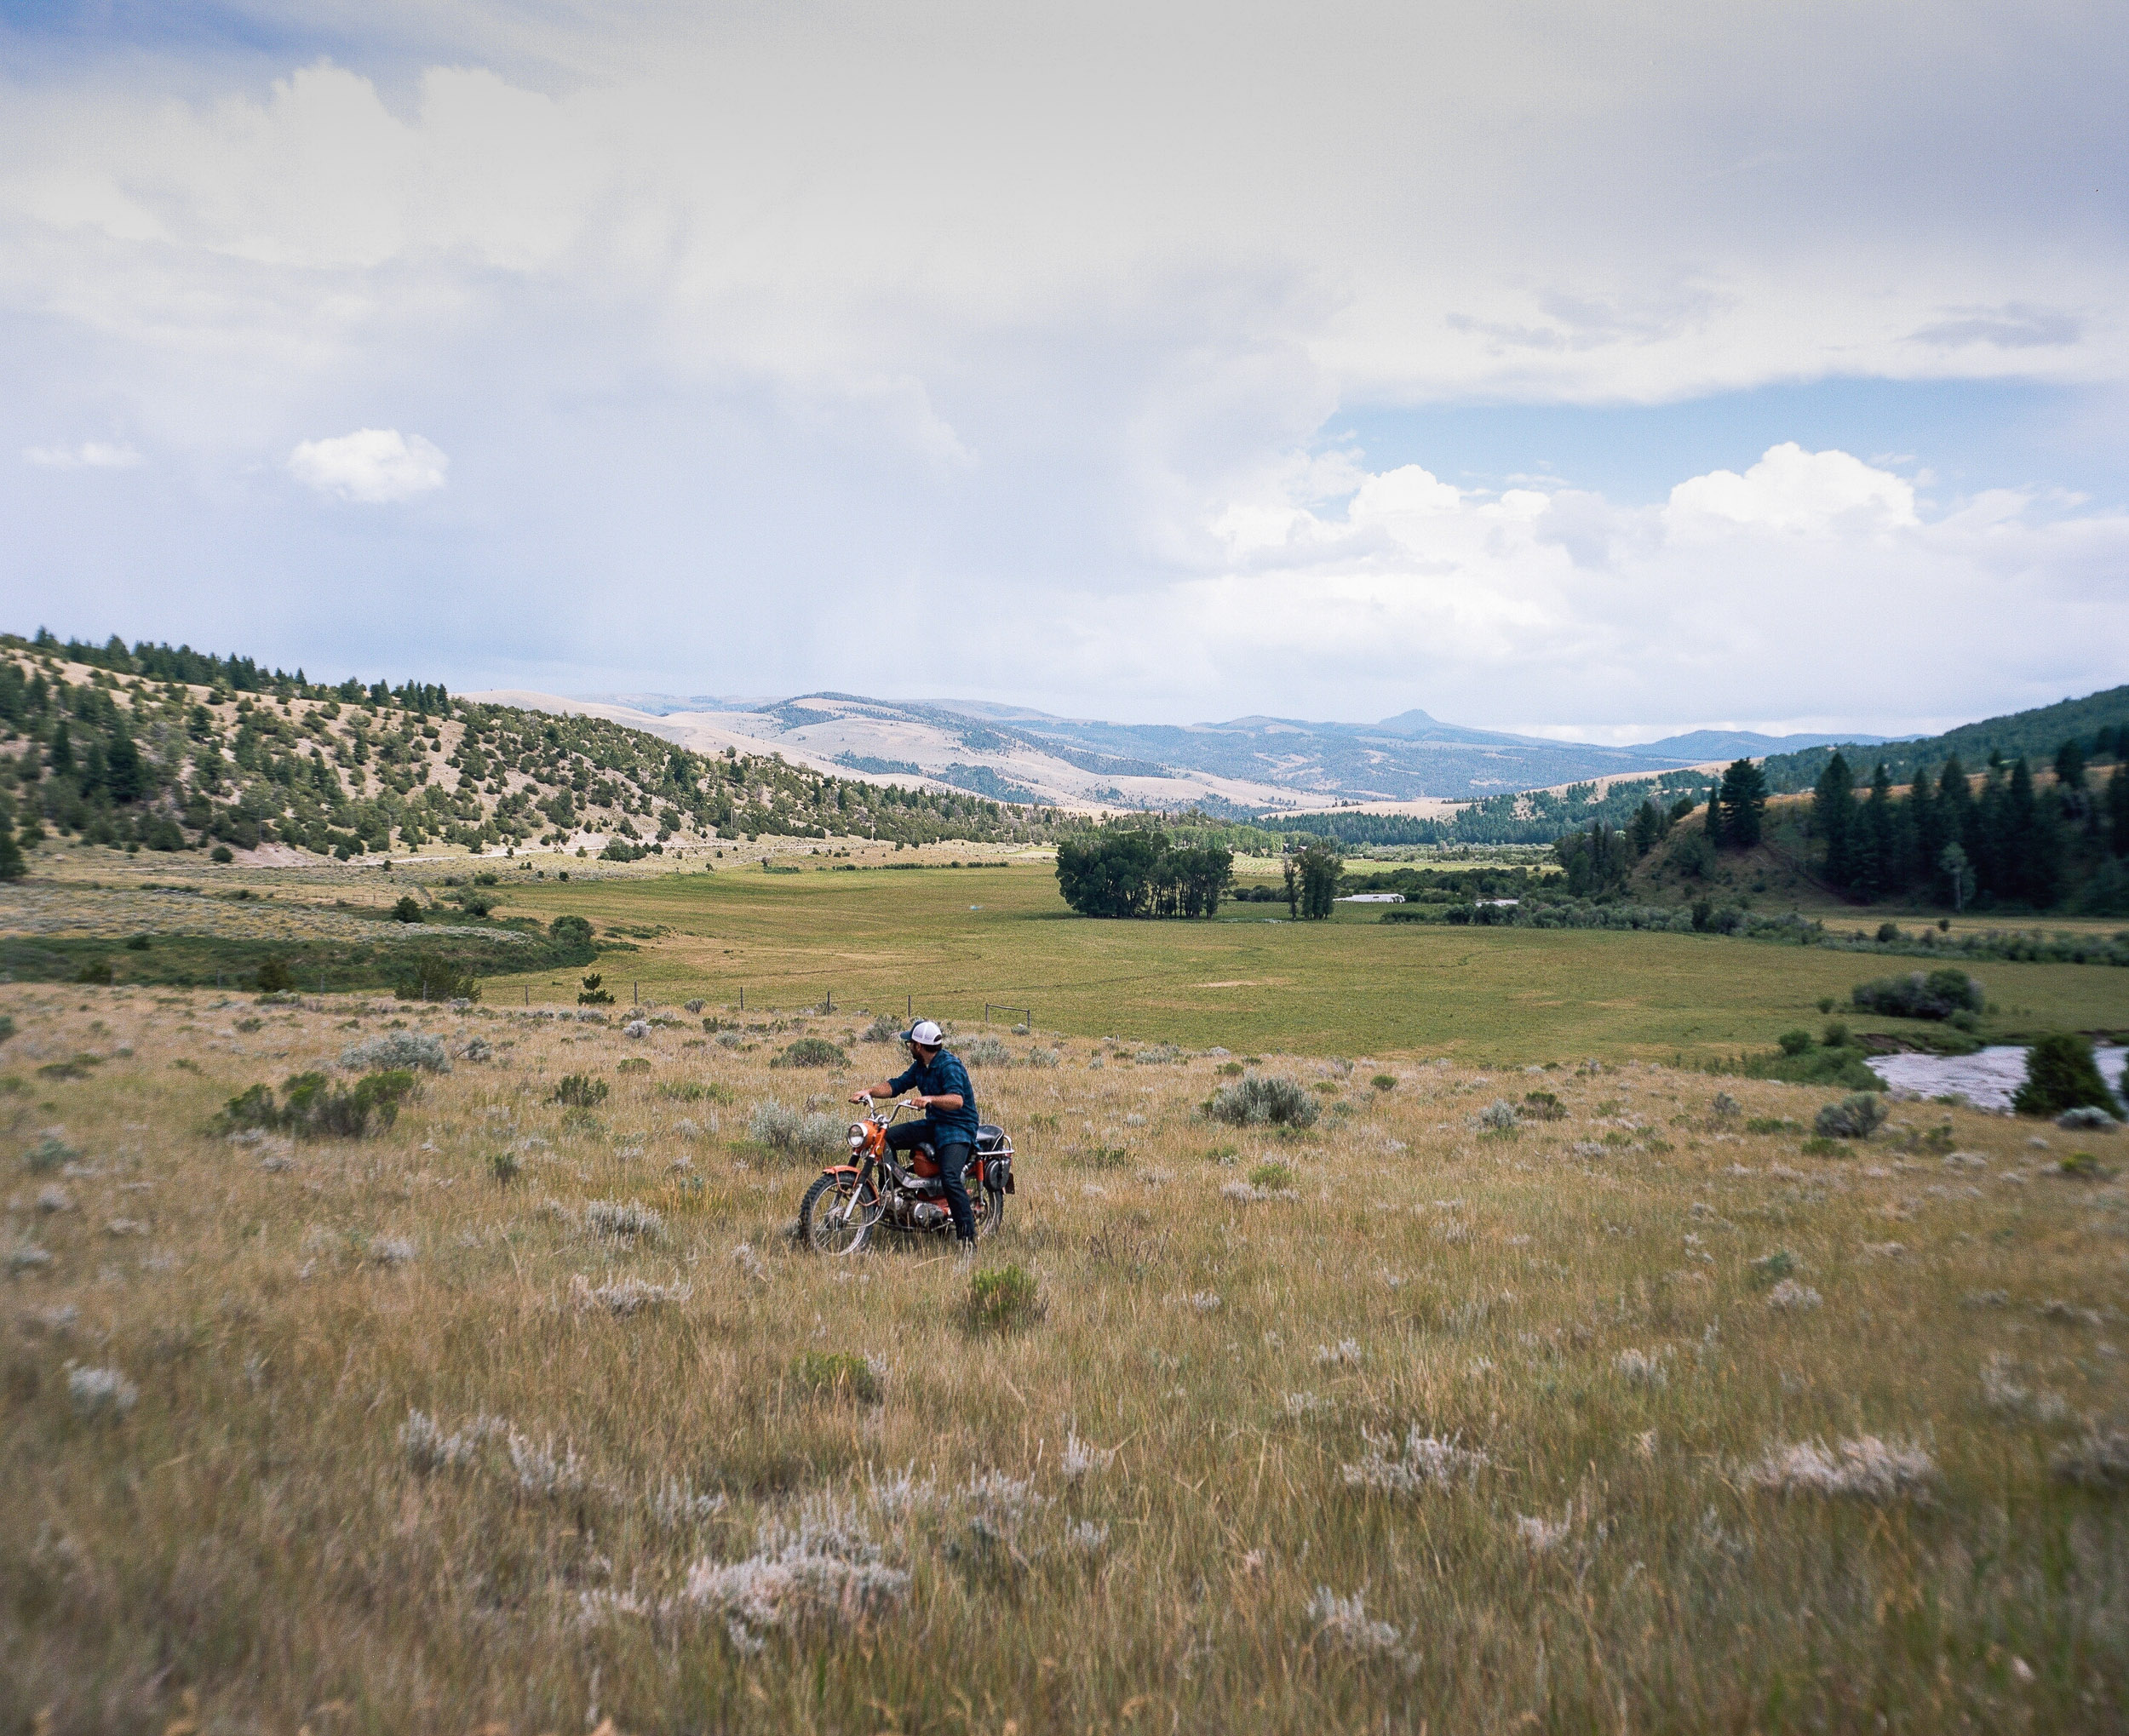 Man on a motorcycle in a field  looking out towards the mountains